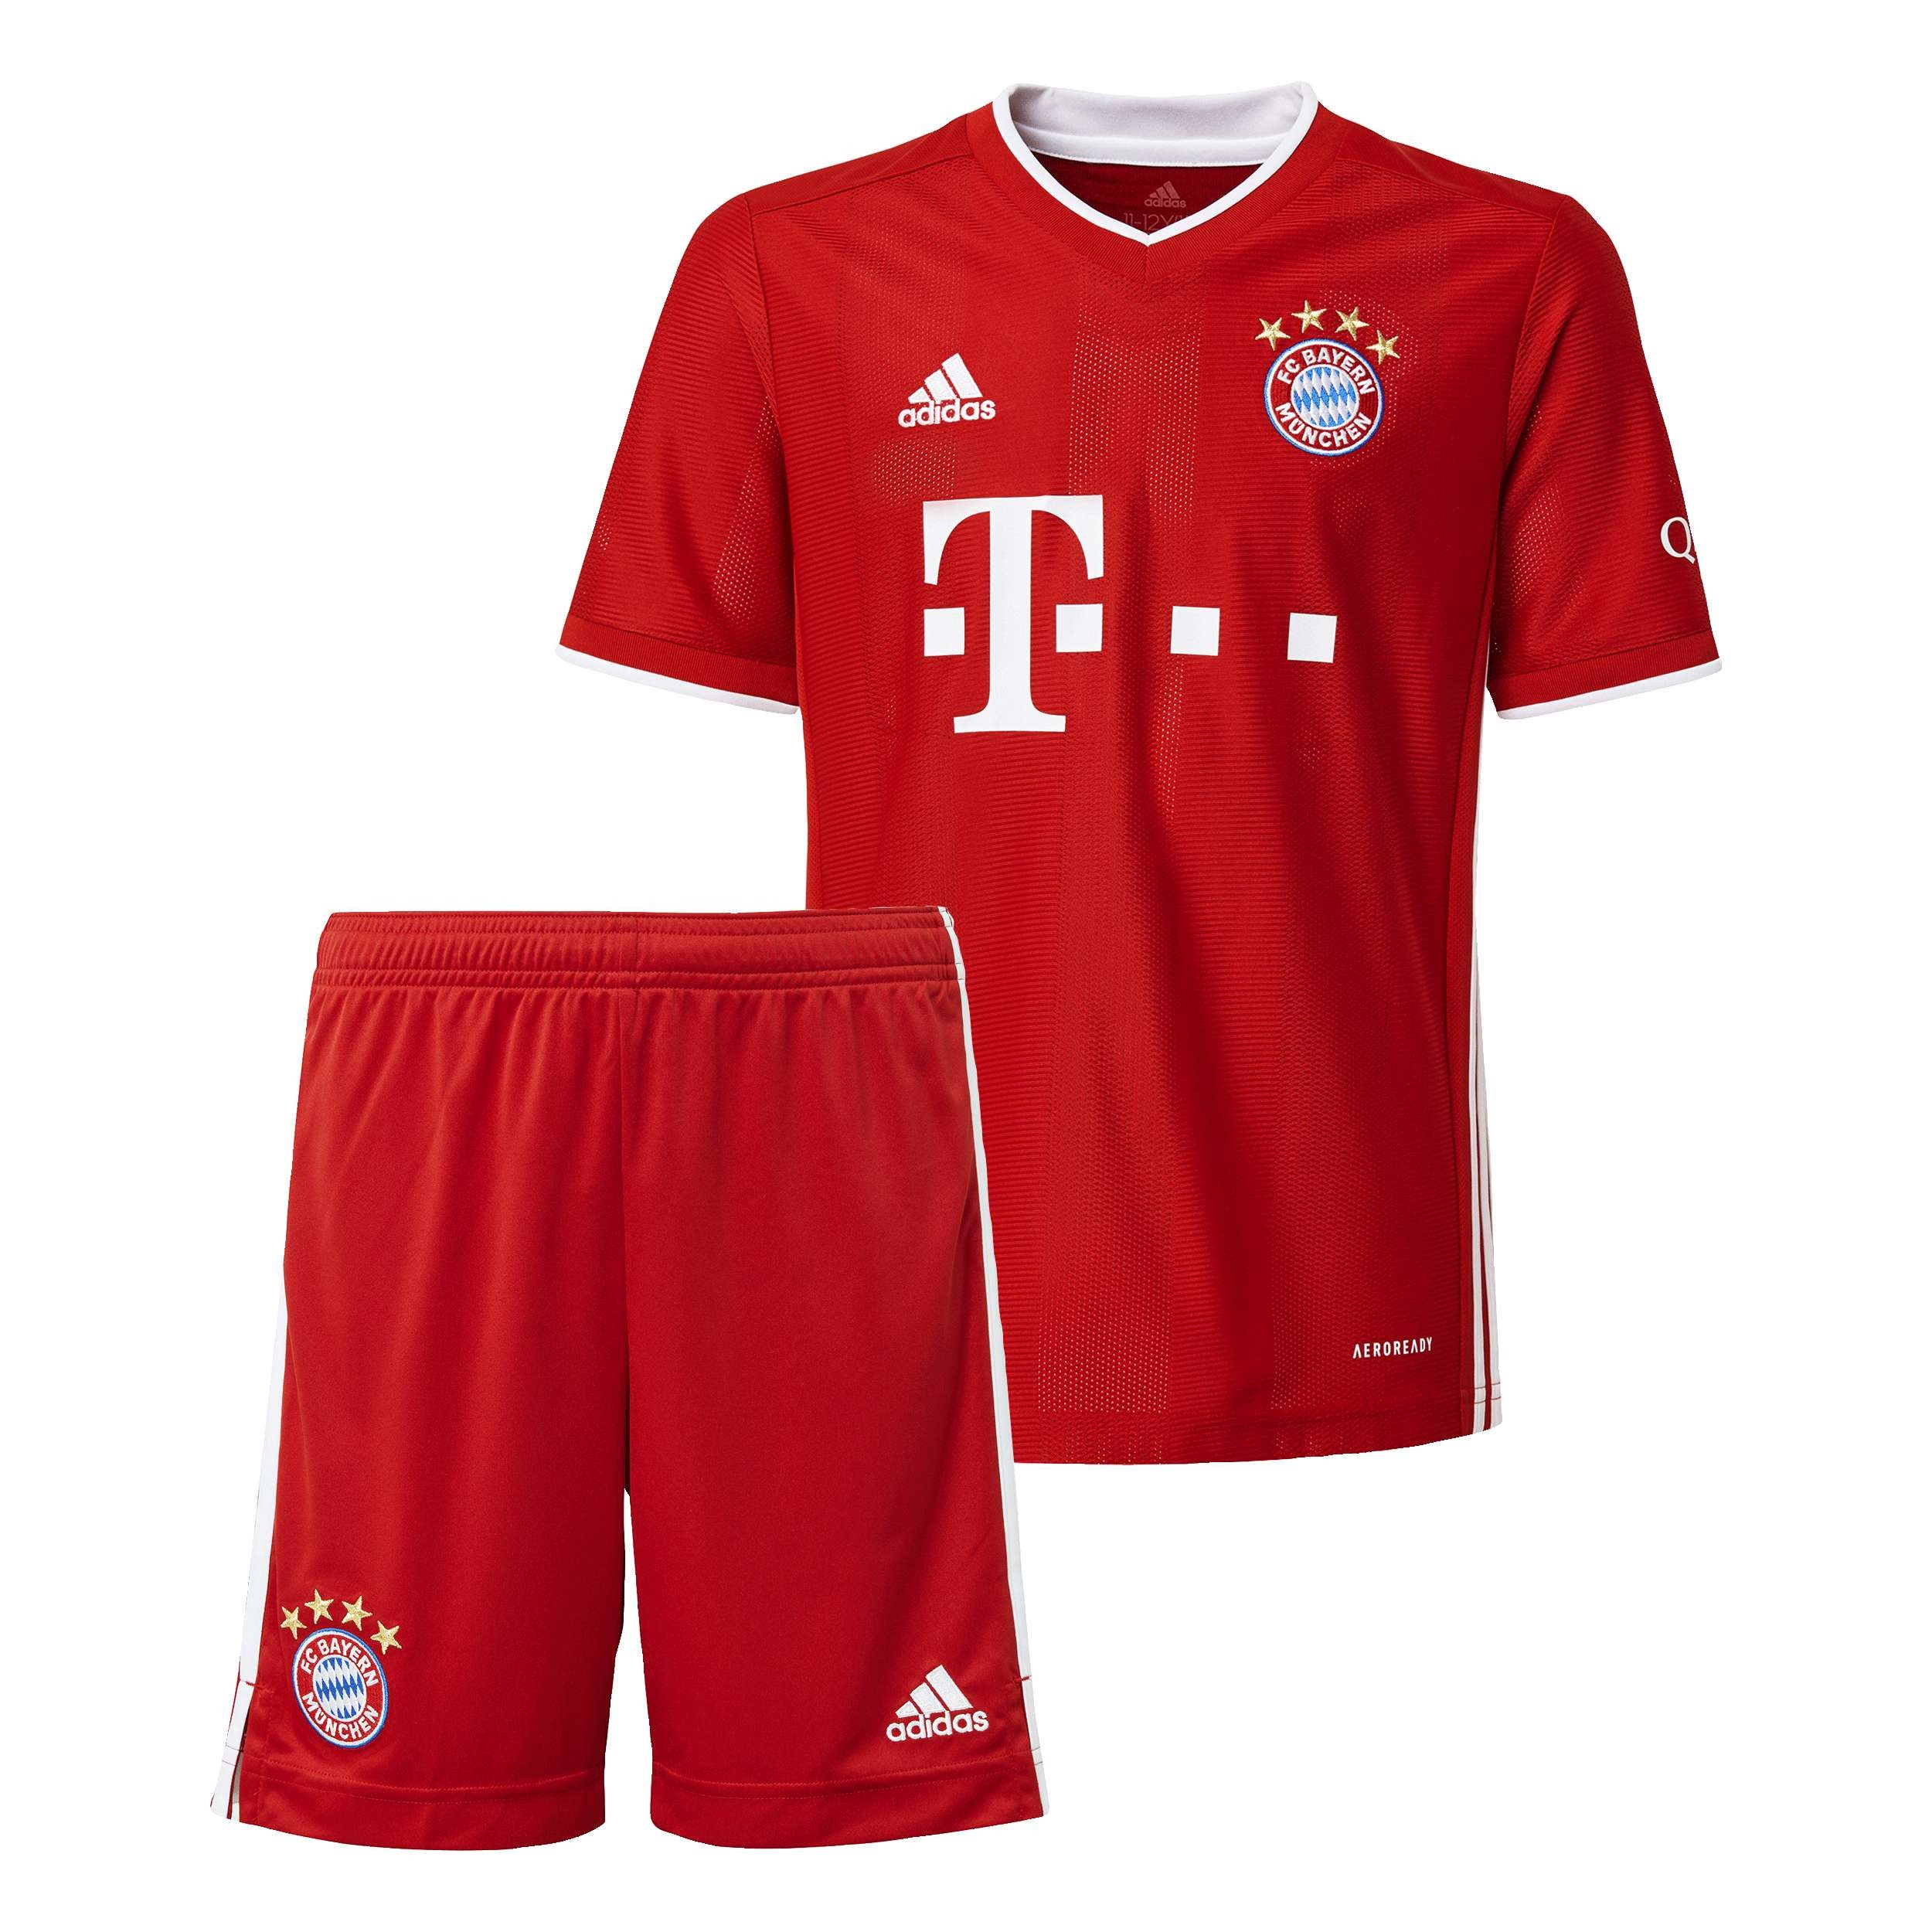 Maillot Football Bayern Munich Domicile Enfant 2020/2021 Rouge